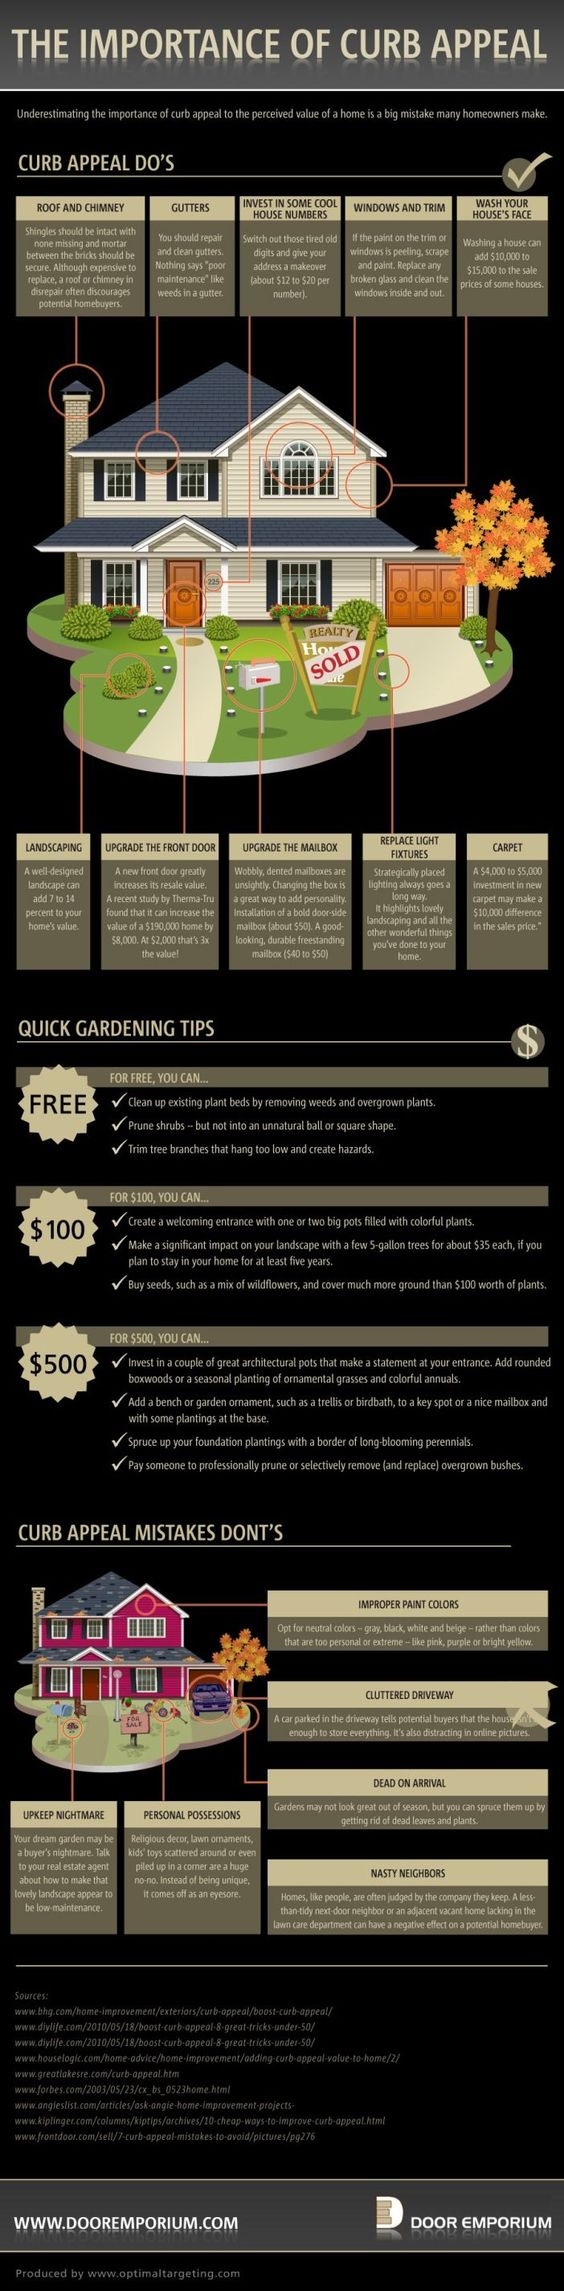 How to Stage Your House for a Quick Sale - Rhyan Finch Real Estate Team - www.FinchTeam.com 757-255-8289: